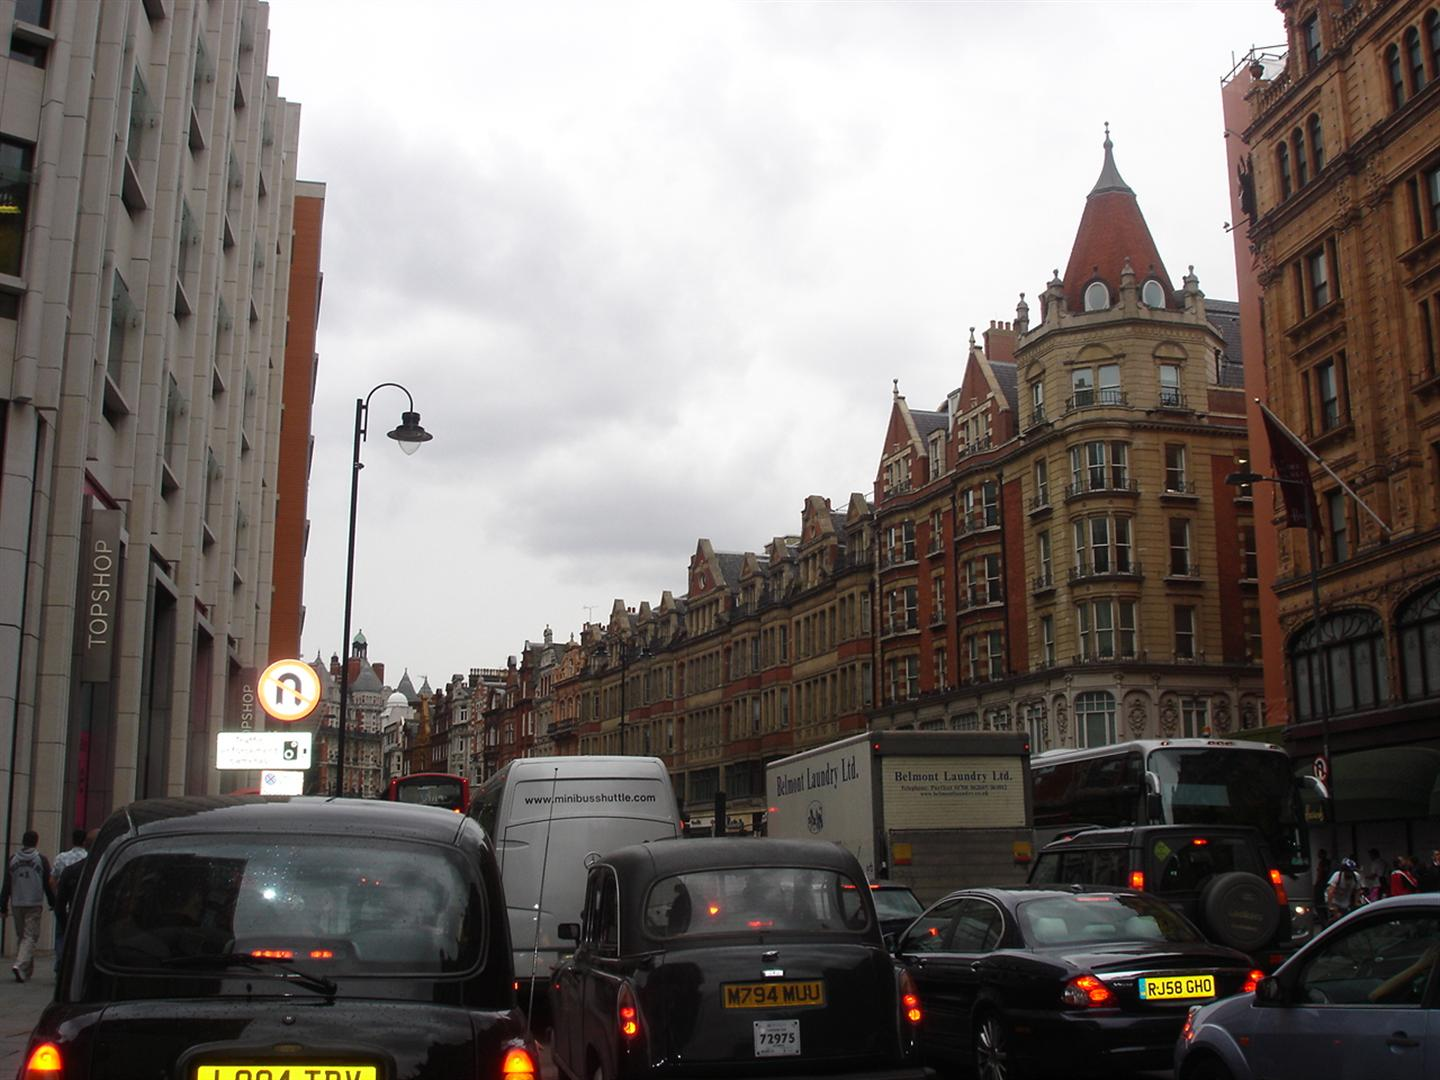 Day 6 Pic 3 - 5 Minute walk to Harrods-3